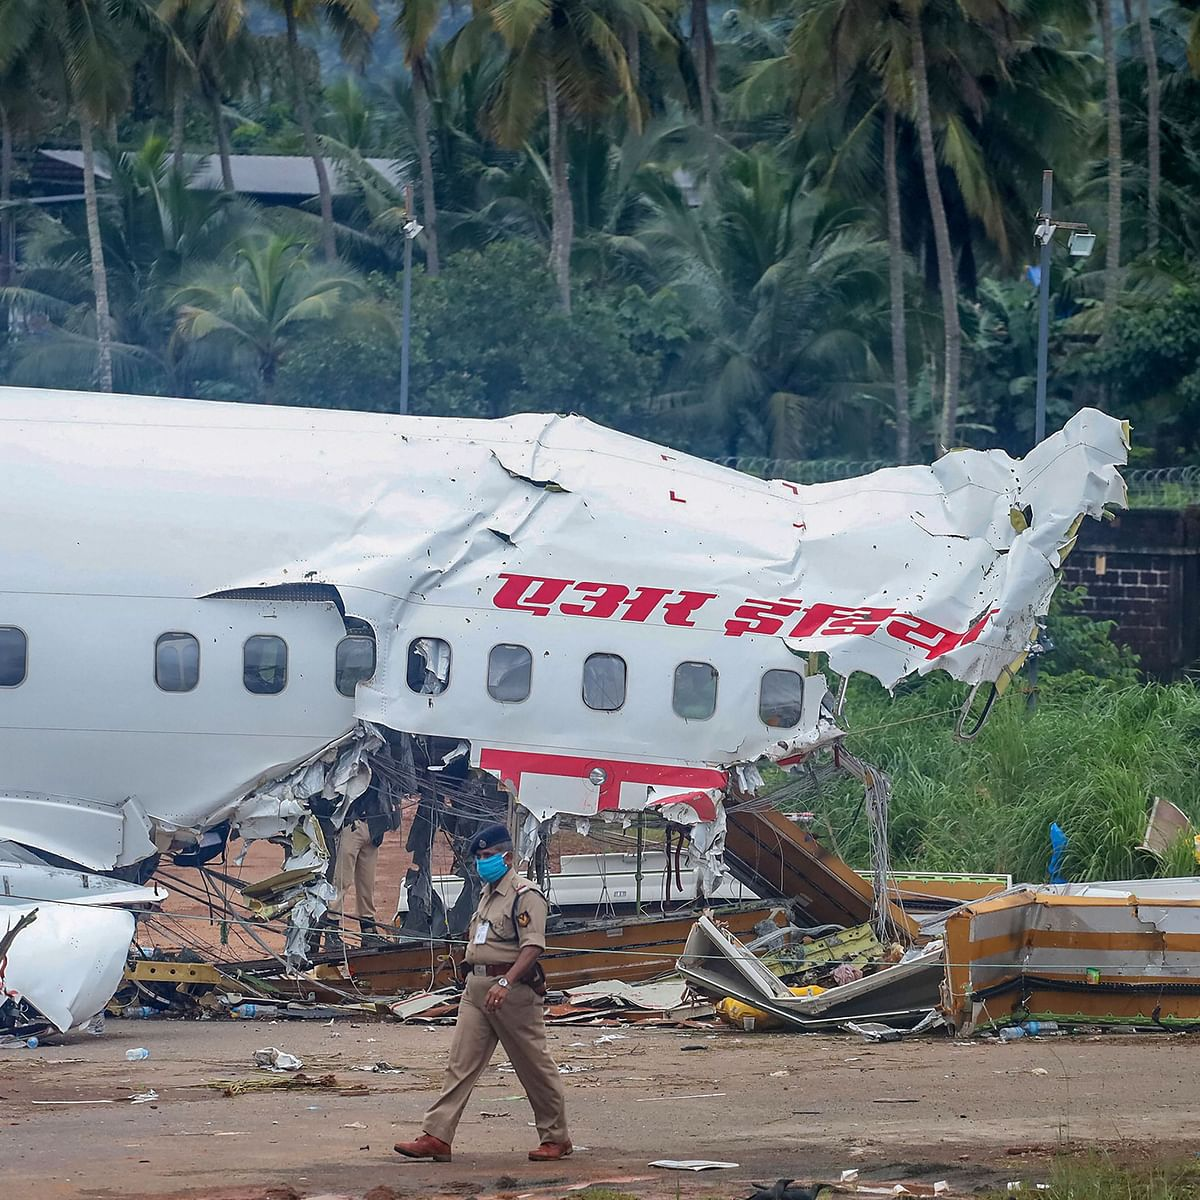 Calicut Air India Express Plane Crash: Locals brave bad weather & pandemic fear to save lives